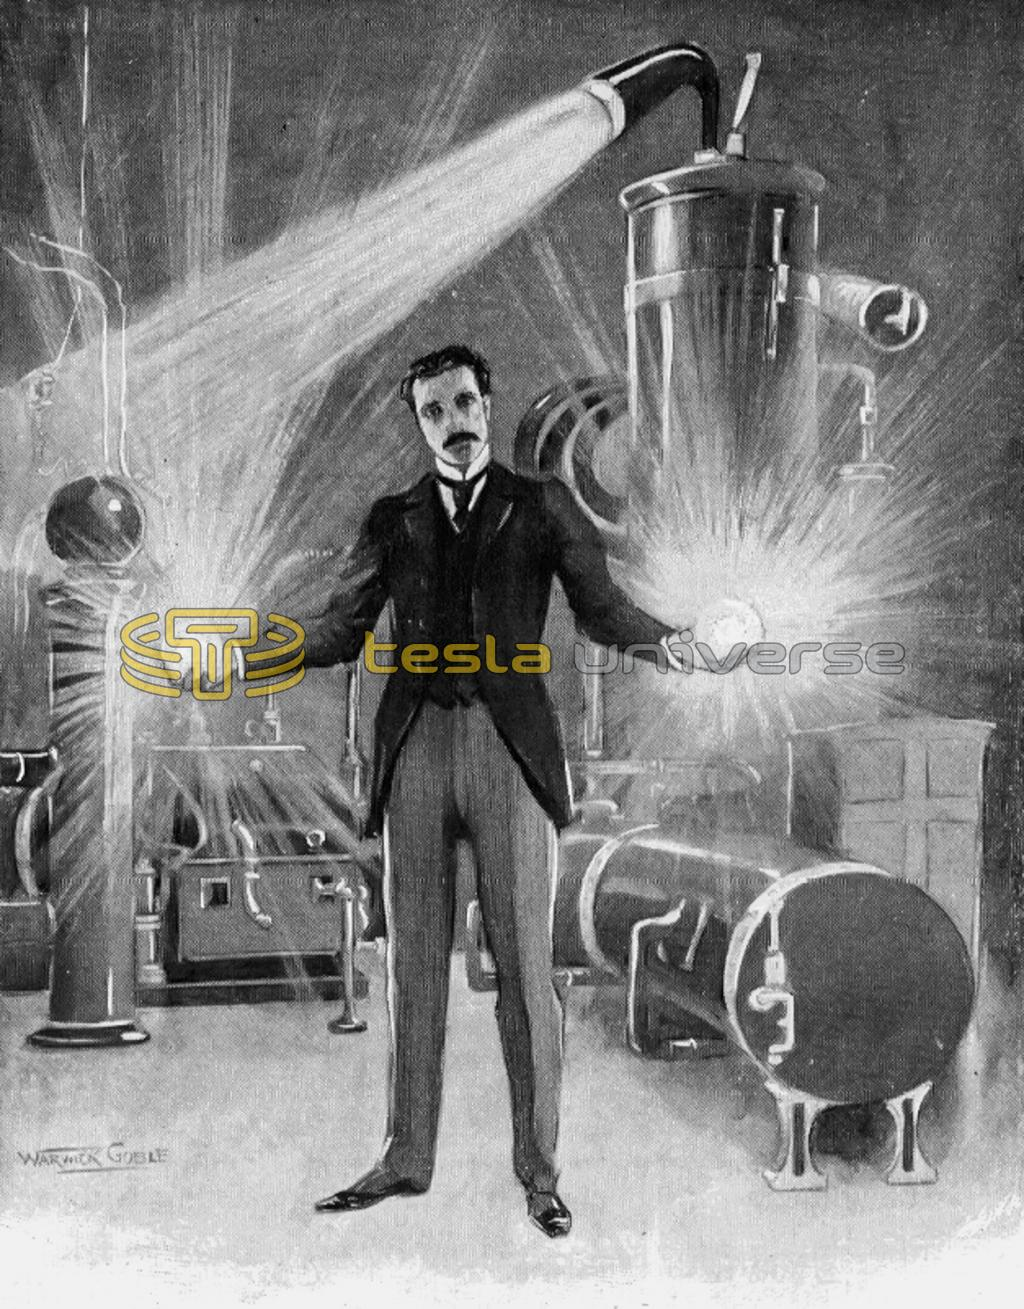 Electrical sorcerer, Nikola Tesla wilding balls of electric flames in his hands